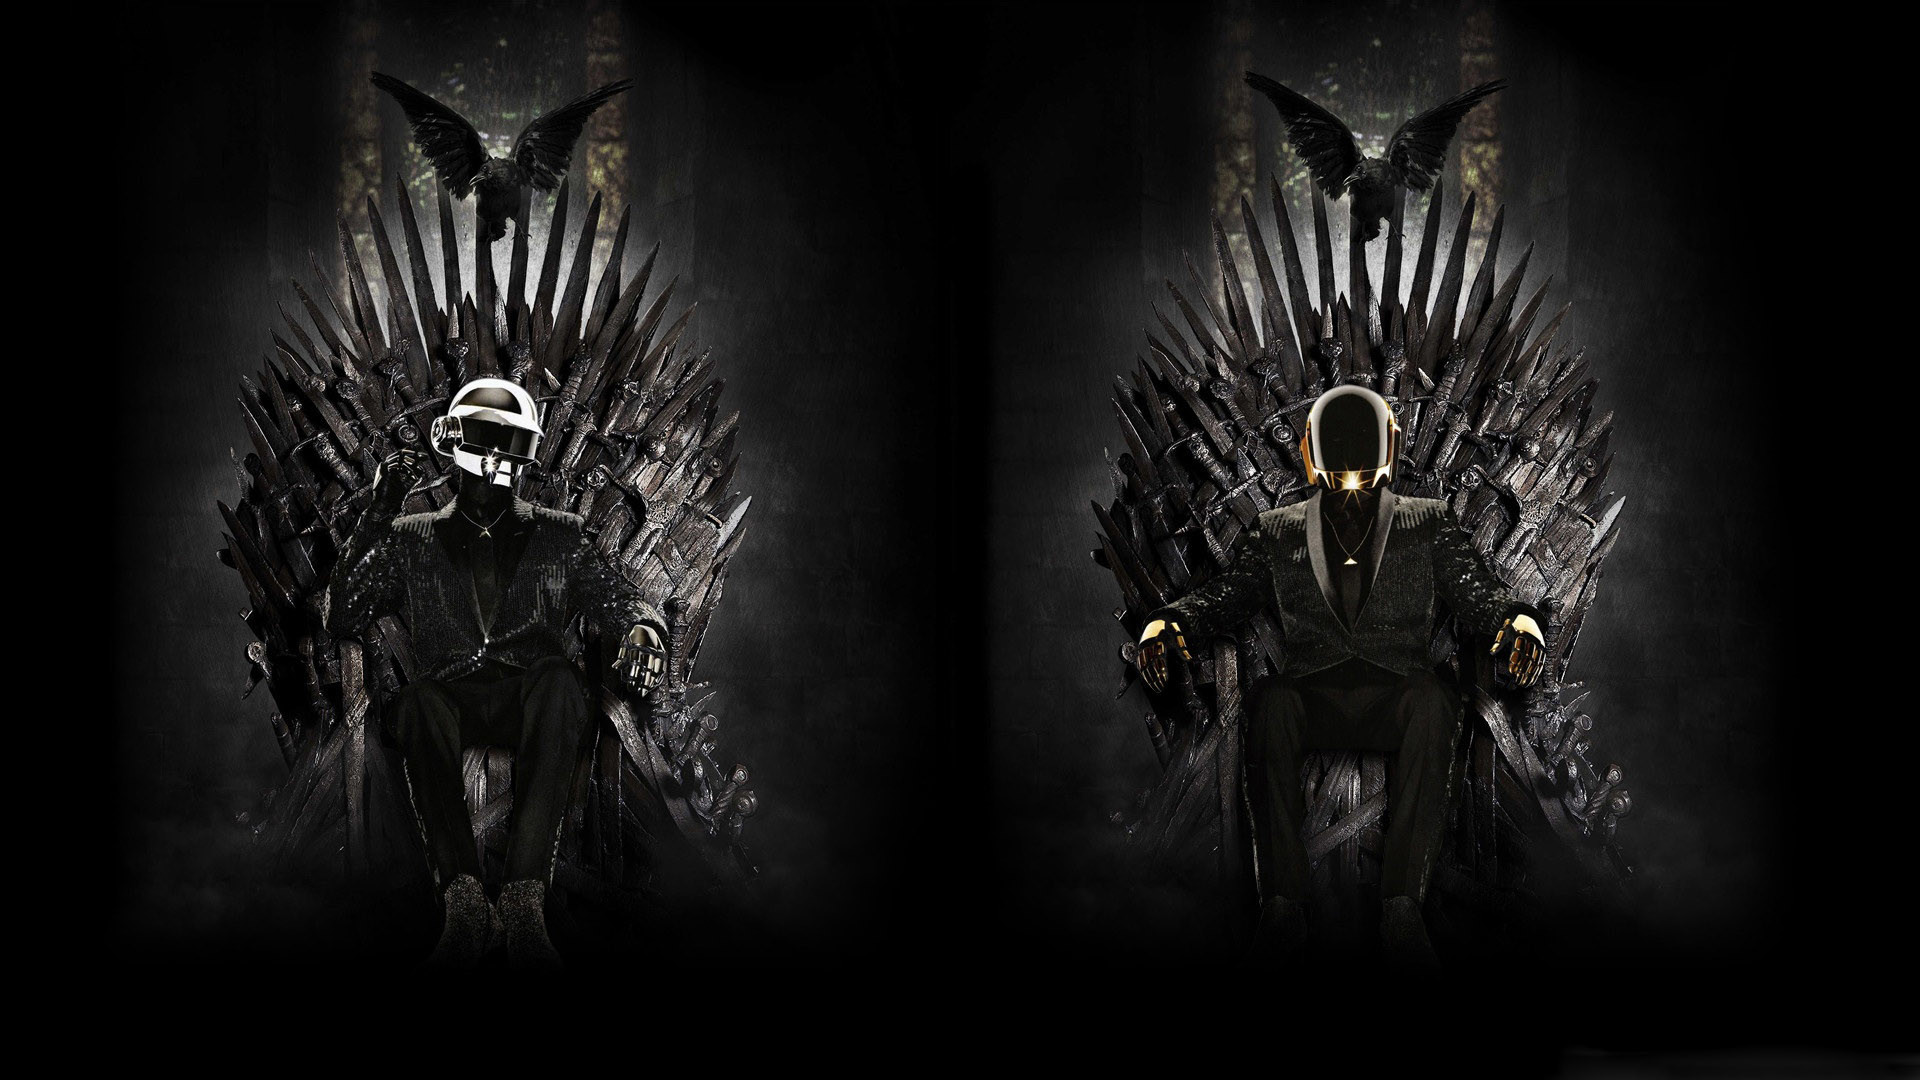 Best Game Of Thrones Wallpapers Pictures to Pin on Pinterest